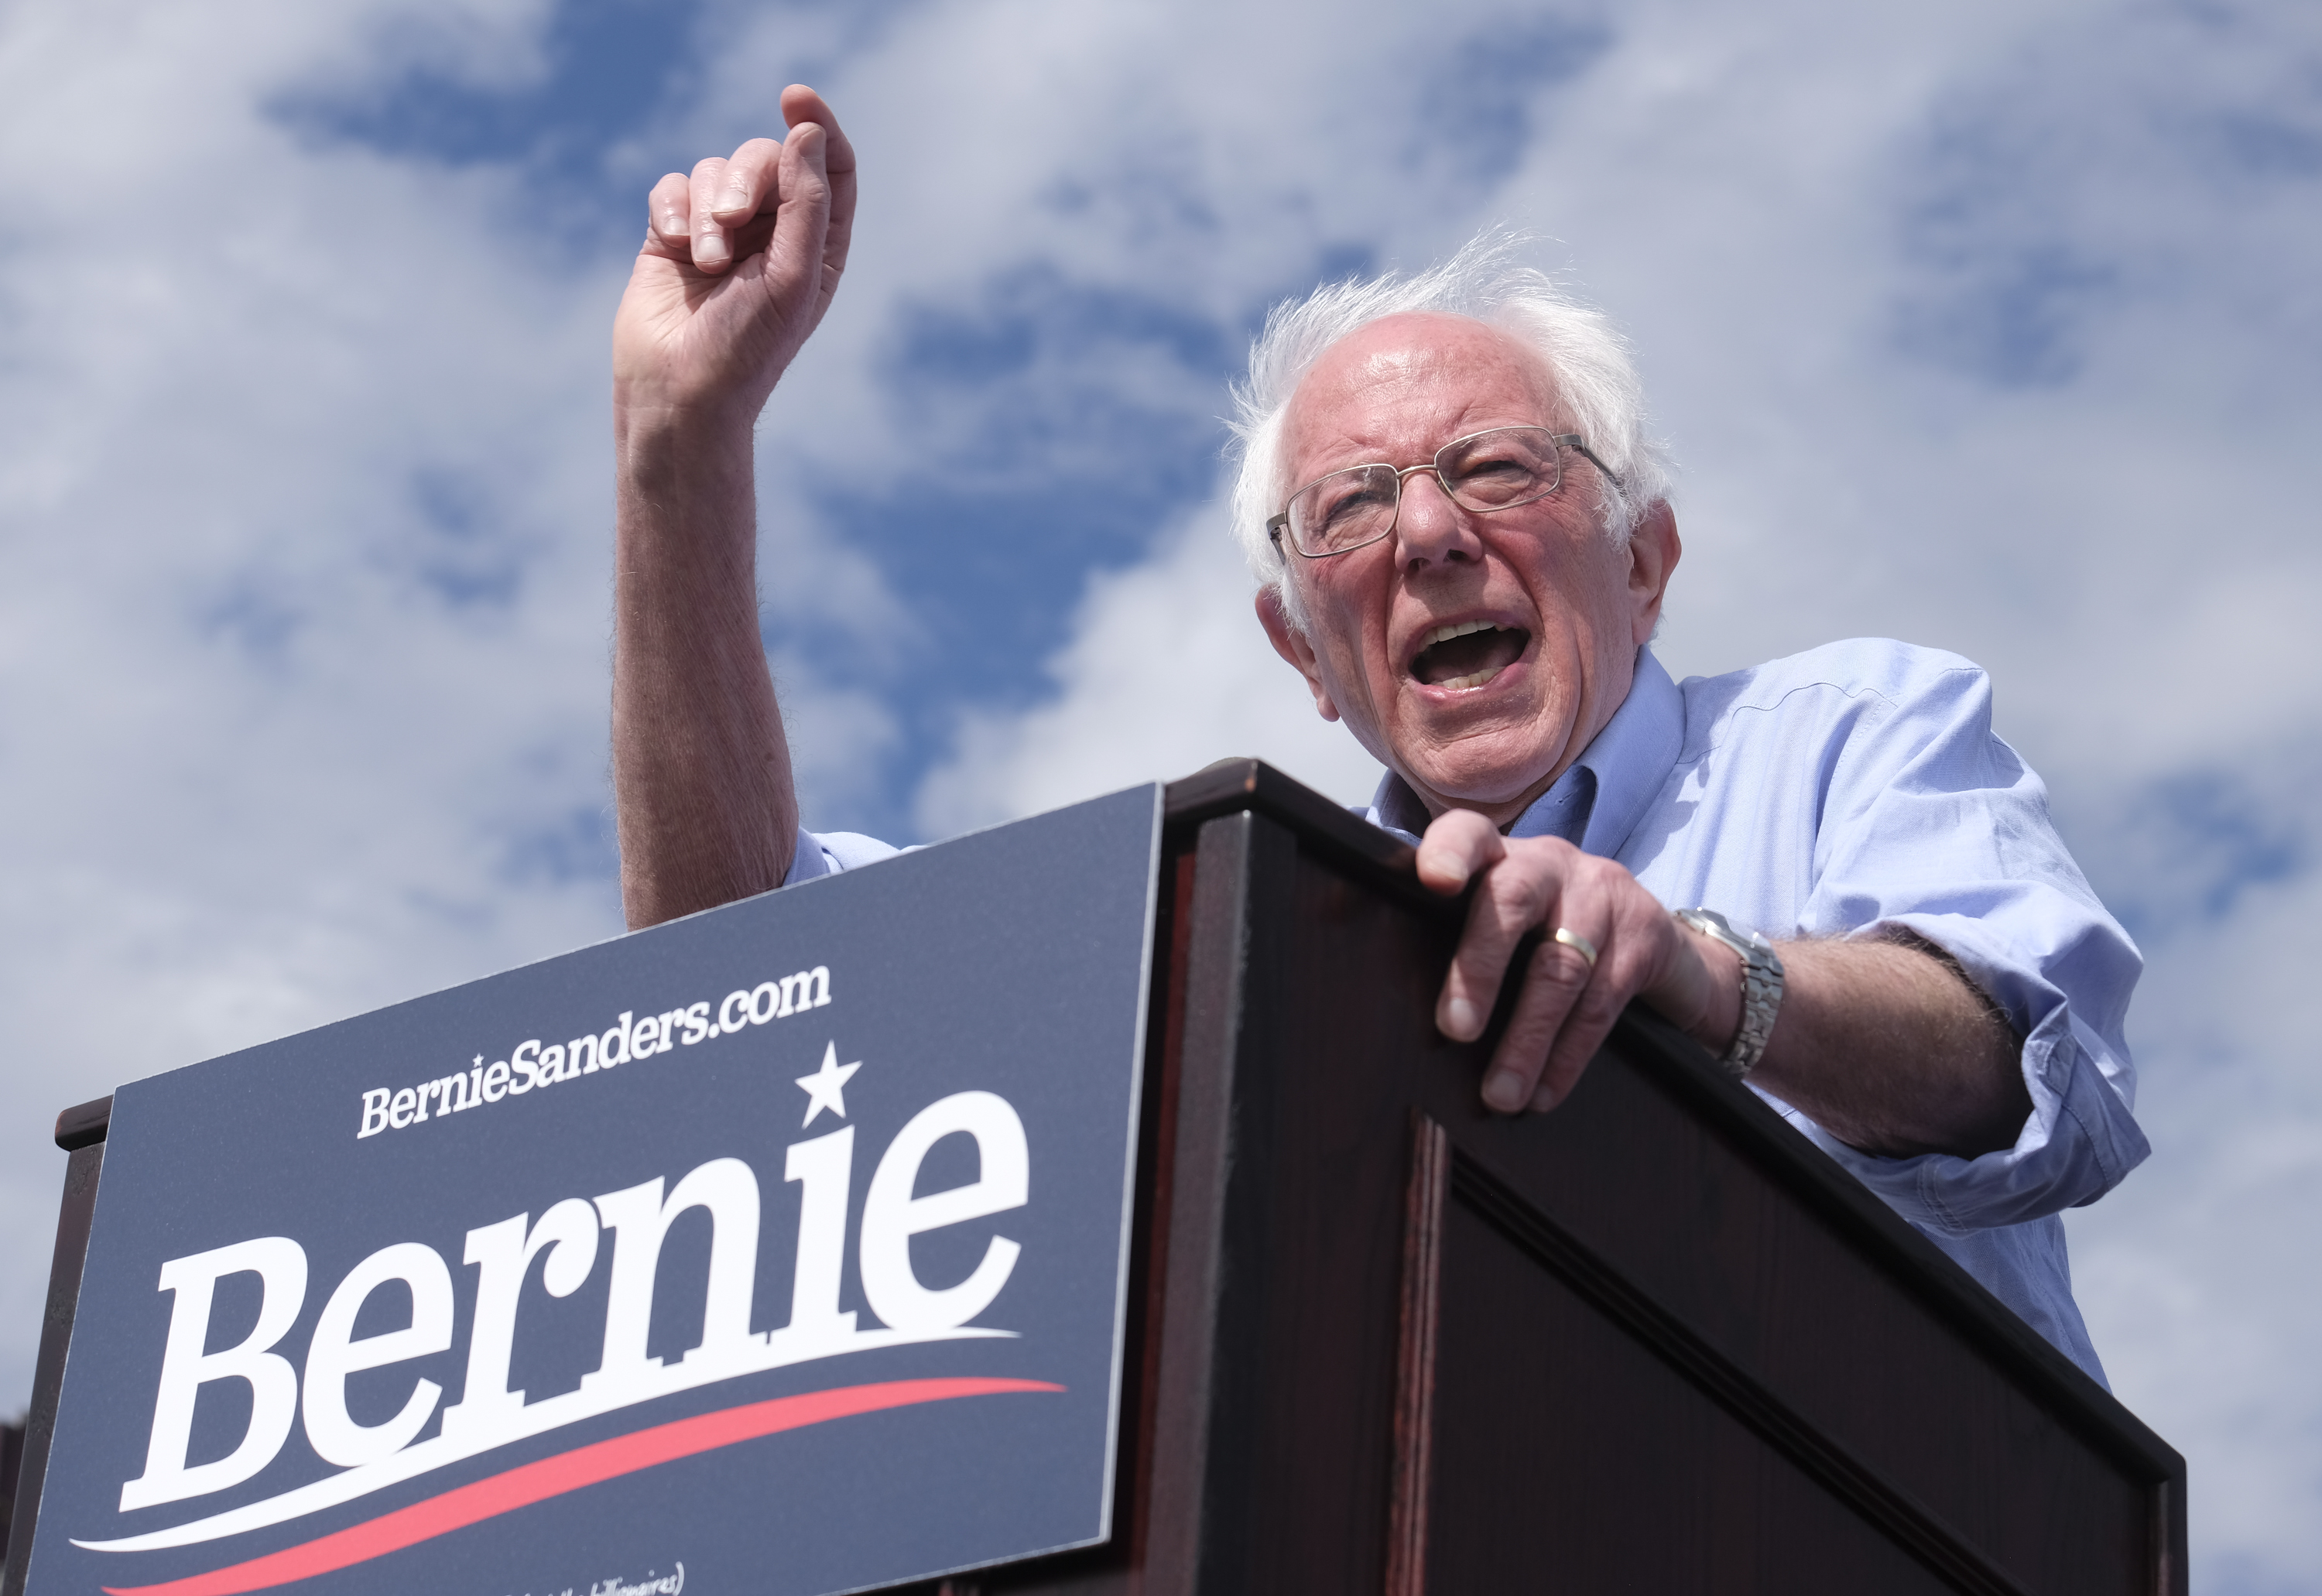 Sanders gestures, shouting, at a podium bearing his name under a blue sky dotted with white clouds.